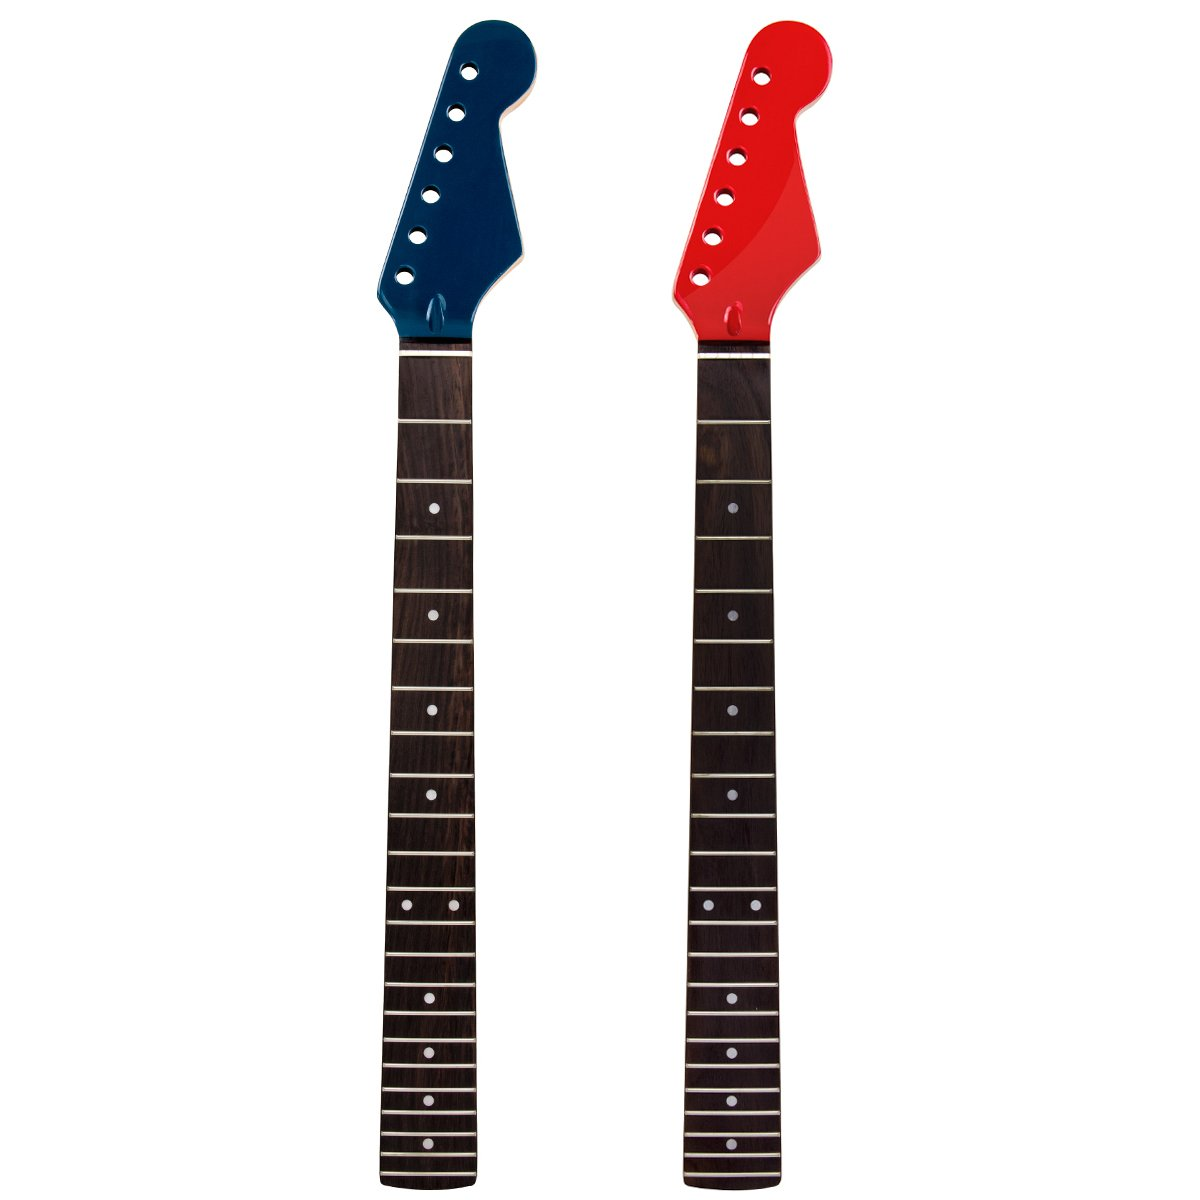 2pcs Electric Guitar Neck Replacement Maple Wood with 22 Fret Rosewood Fretboard 2 Pcs